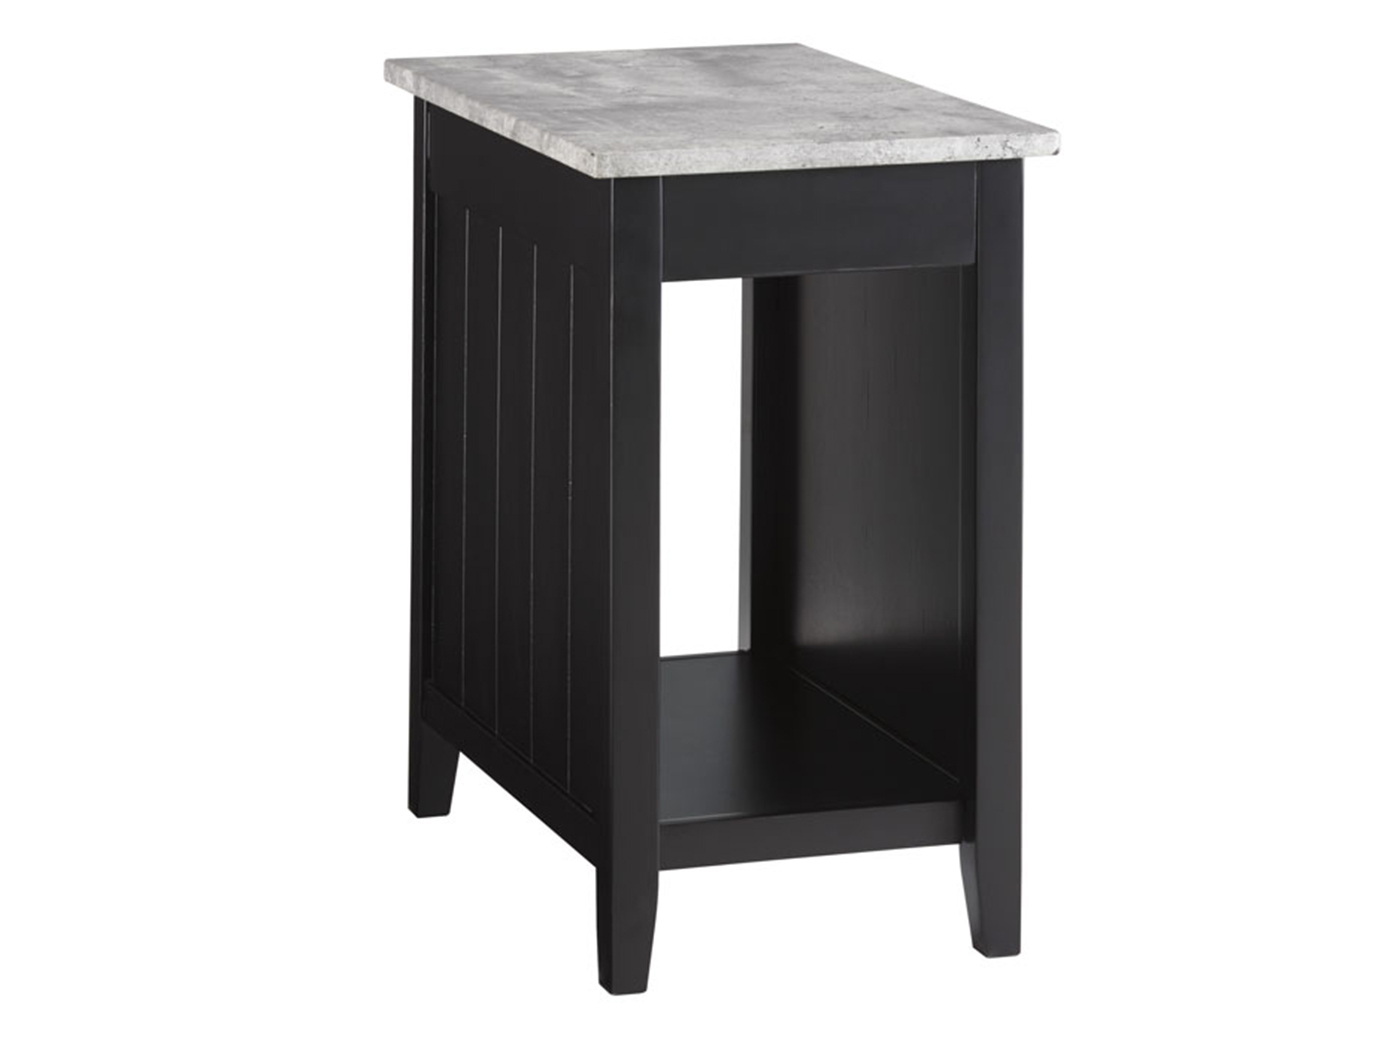 Black & Concrete Power Chairside Table